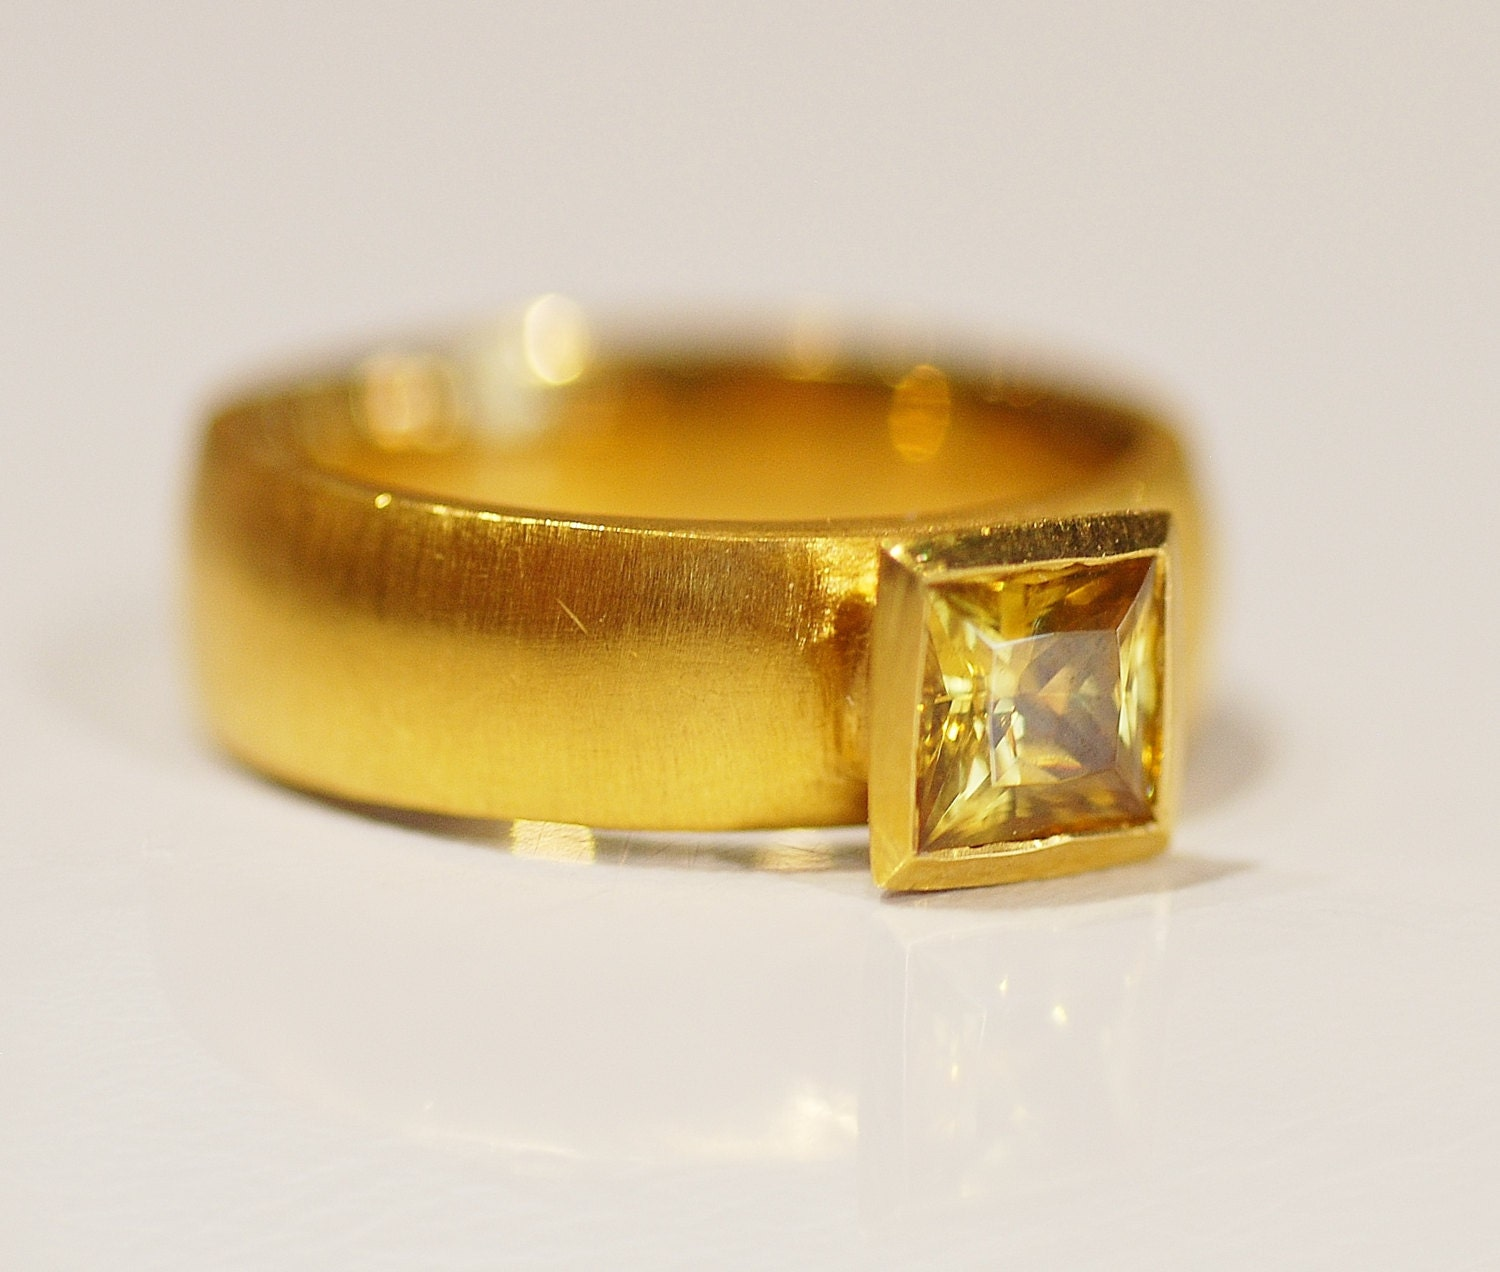 square yellow zircon ring in 24 karat yellow gold size 6. Black Bedroom Furniture Sets. Home Design Ideas